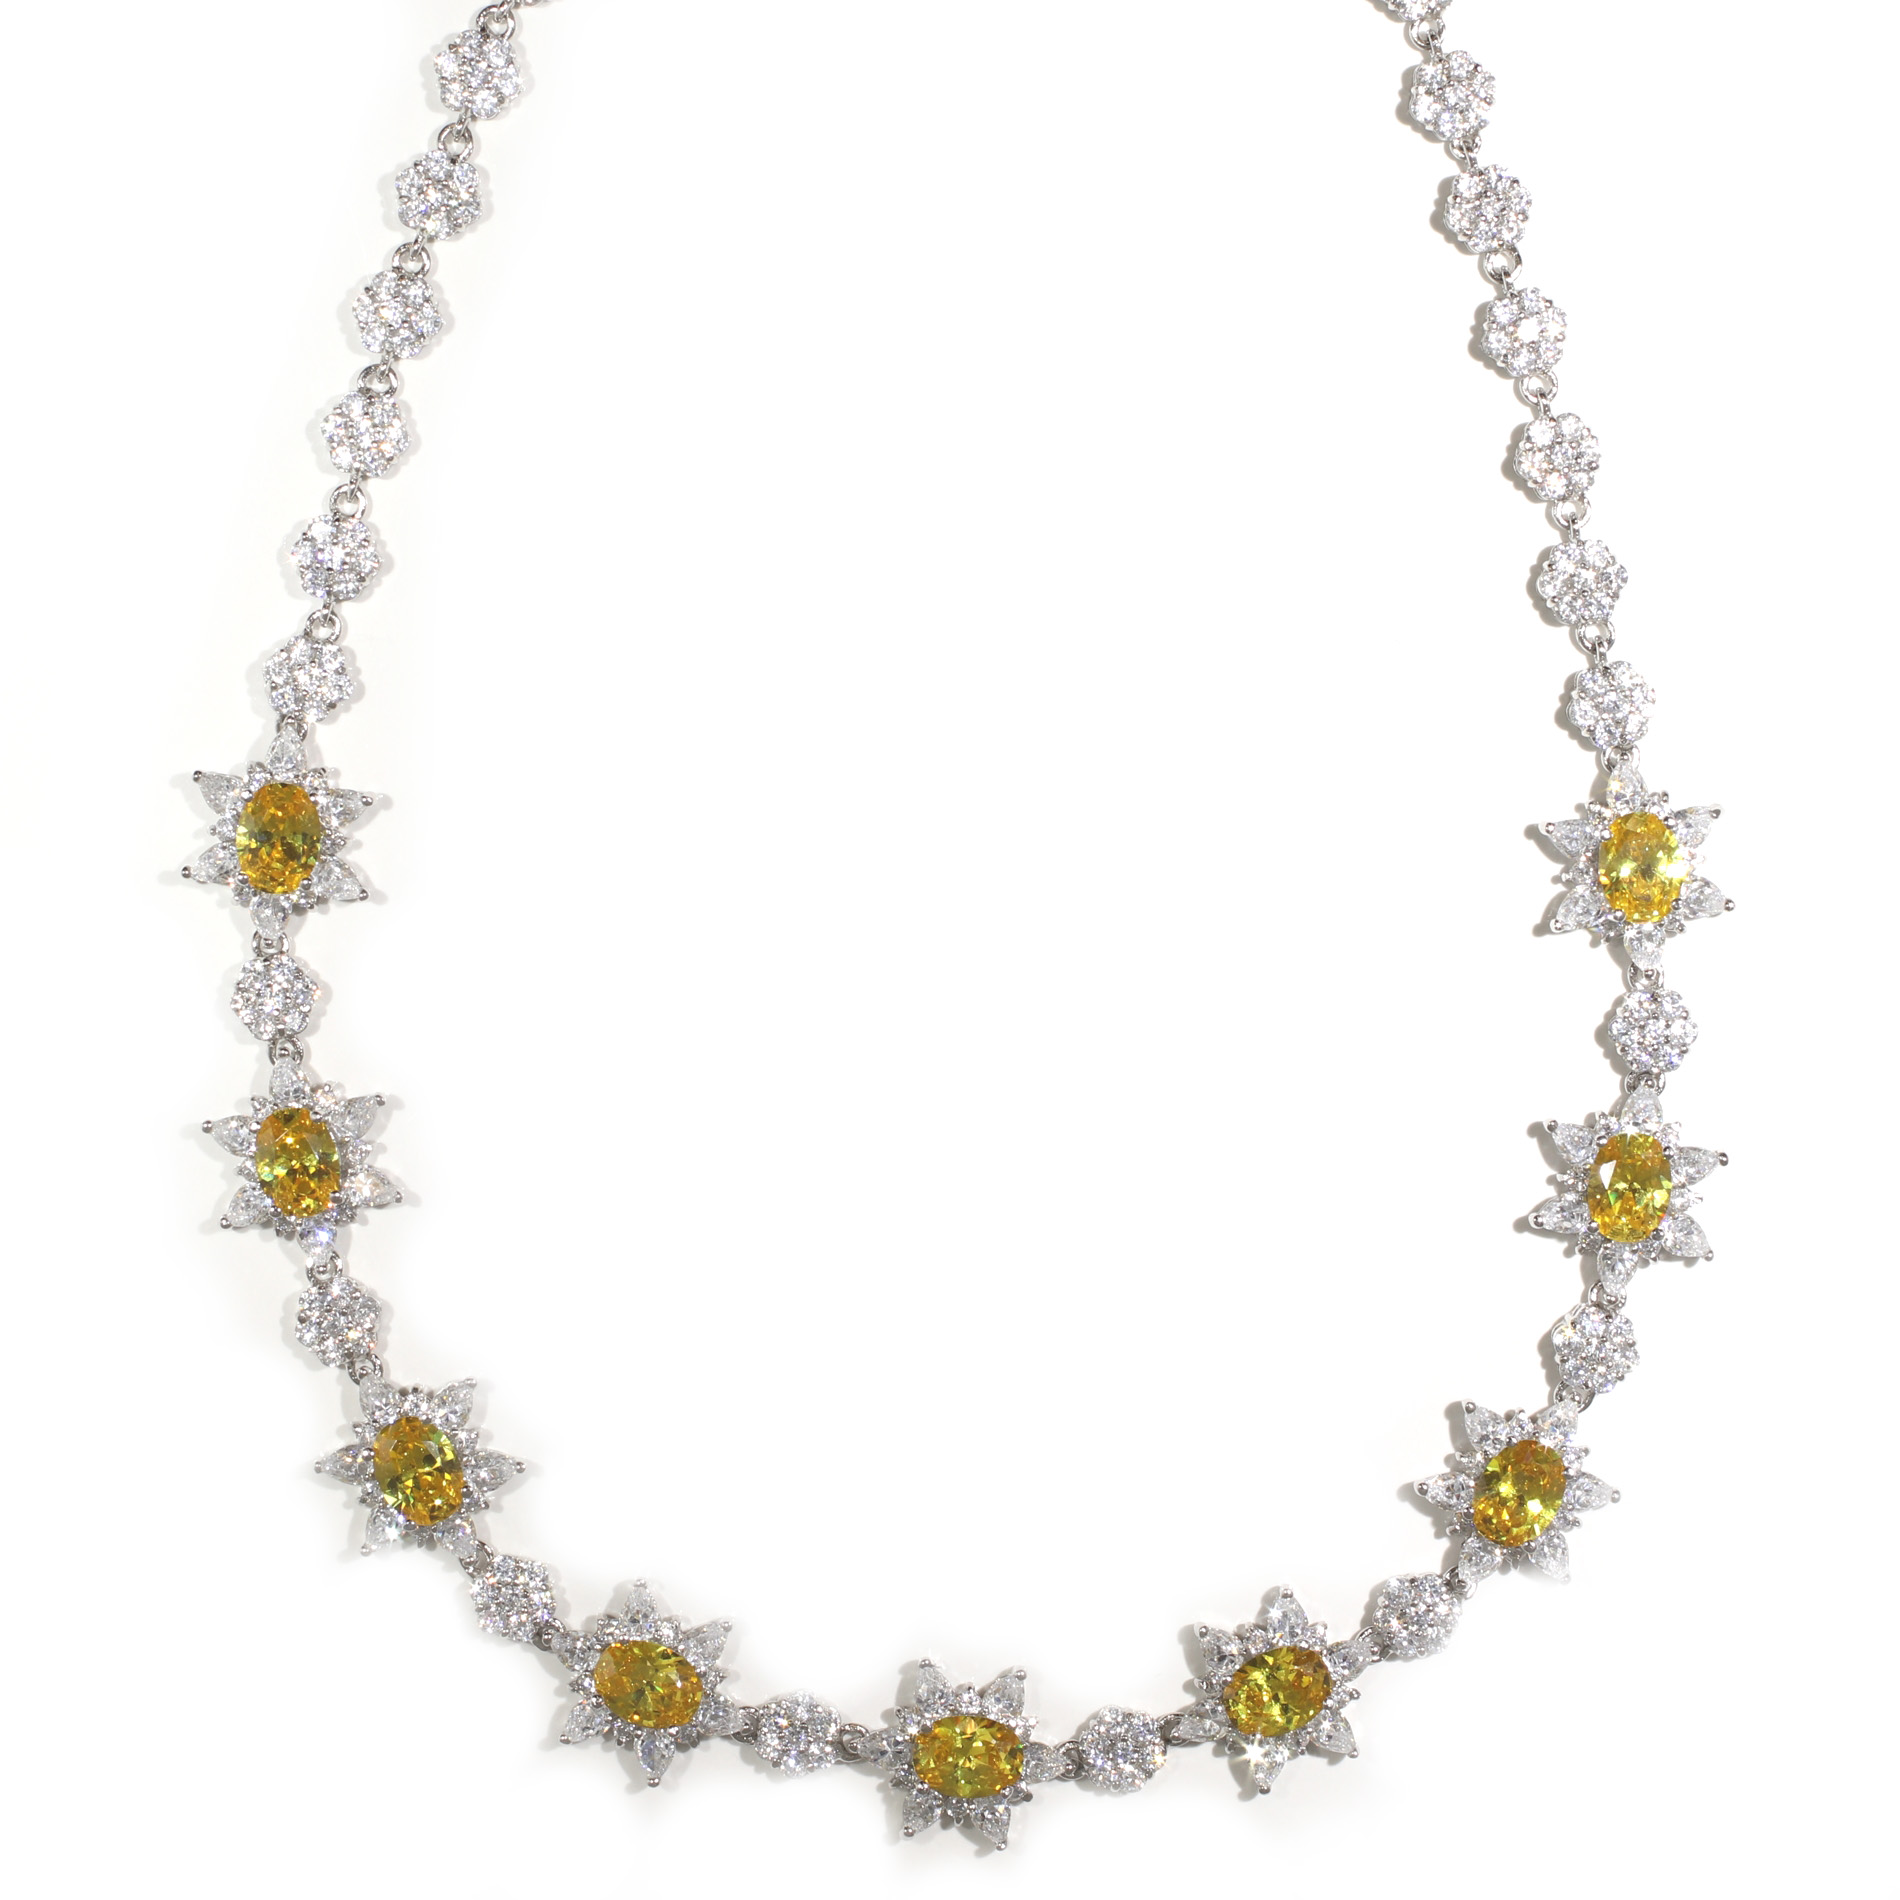 Canary Necklace